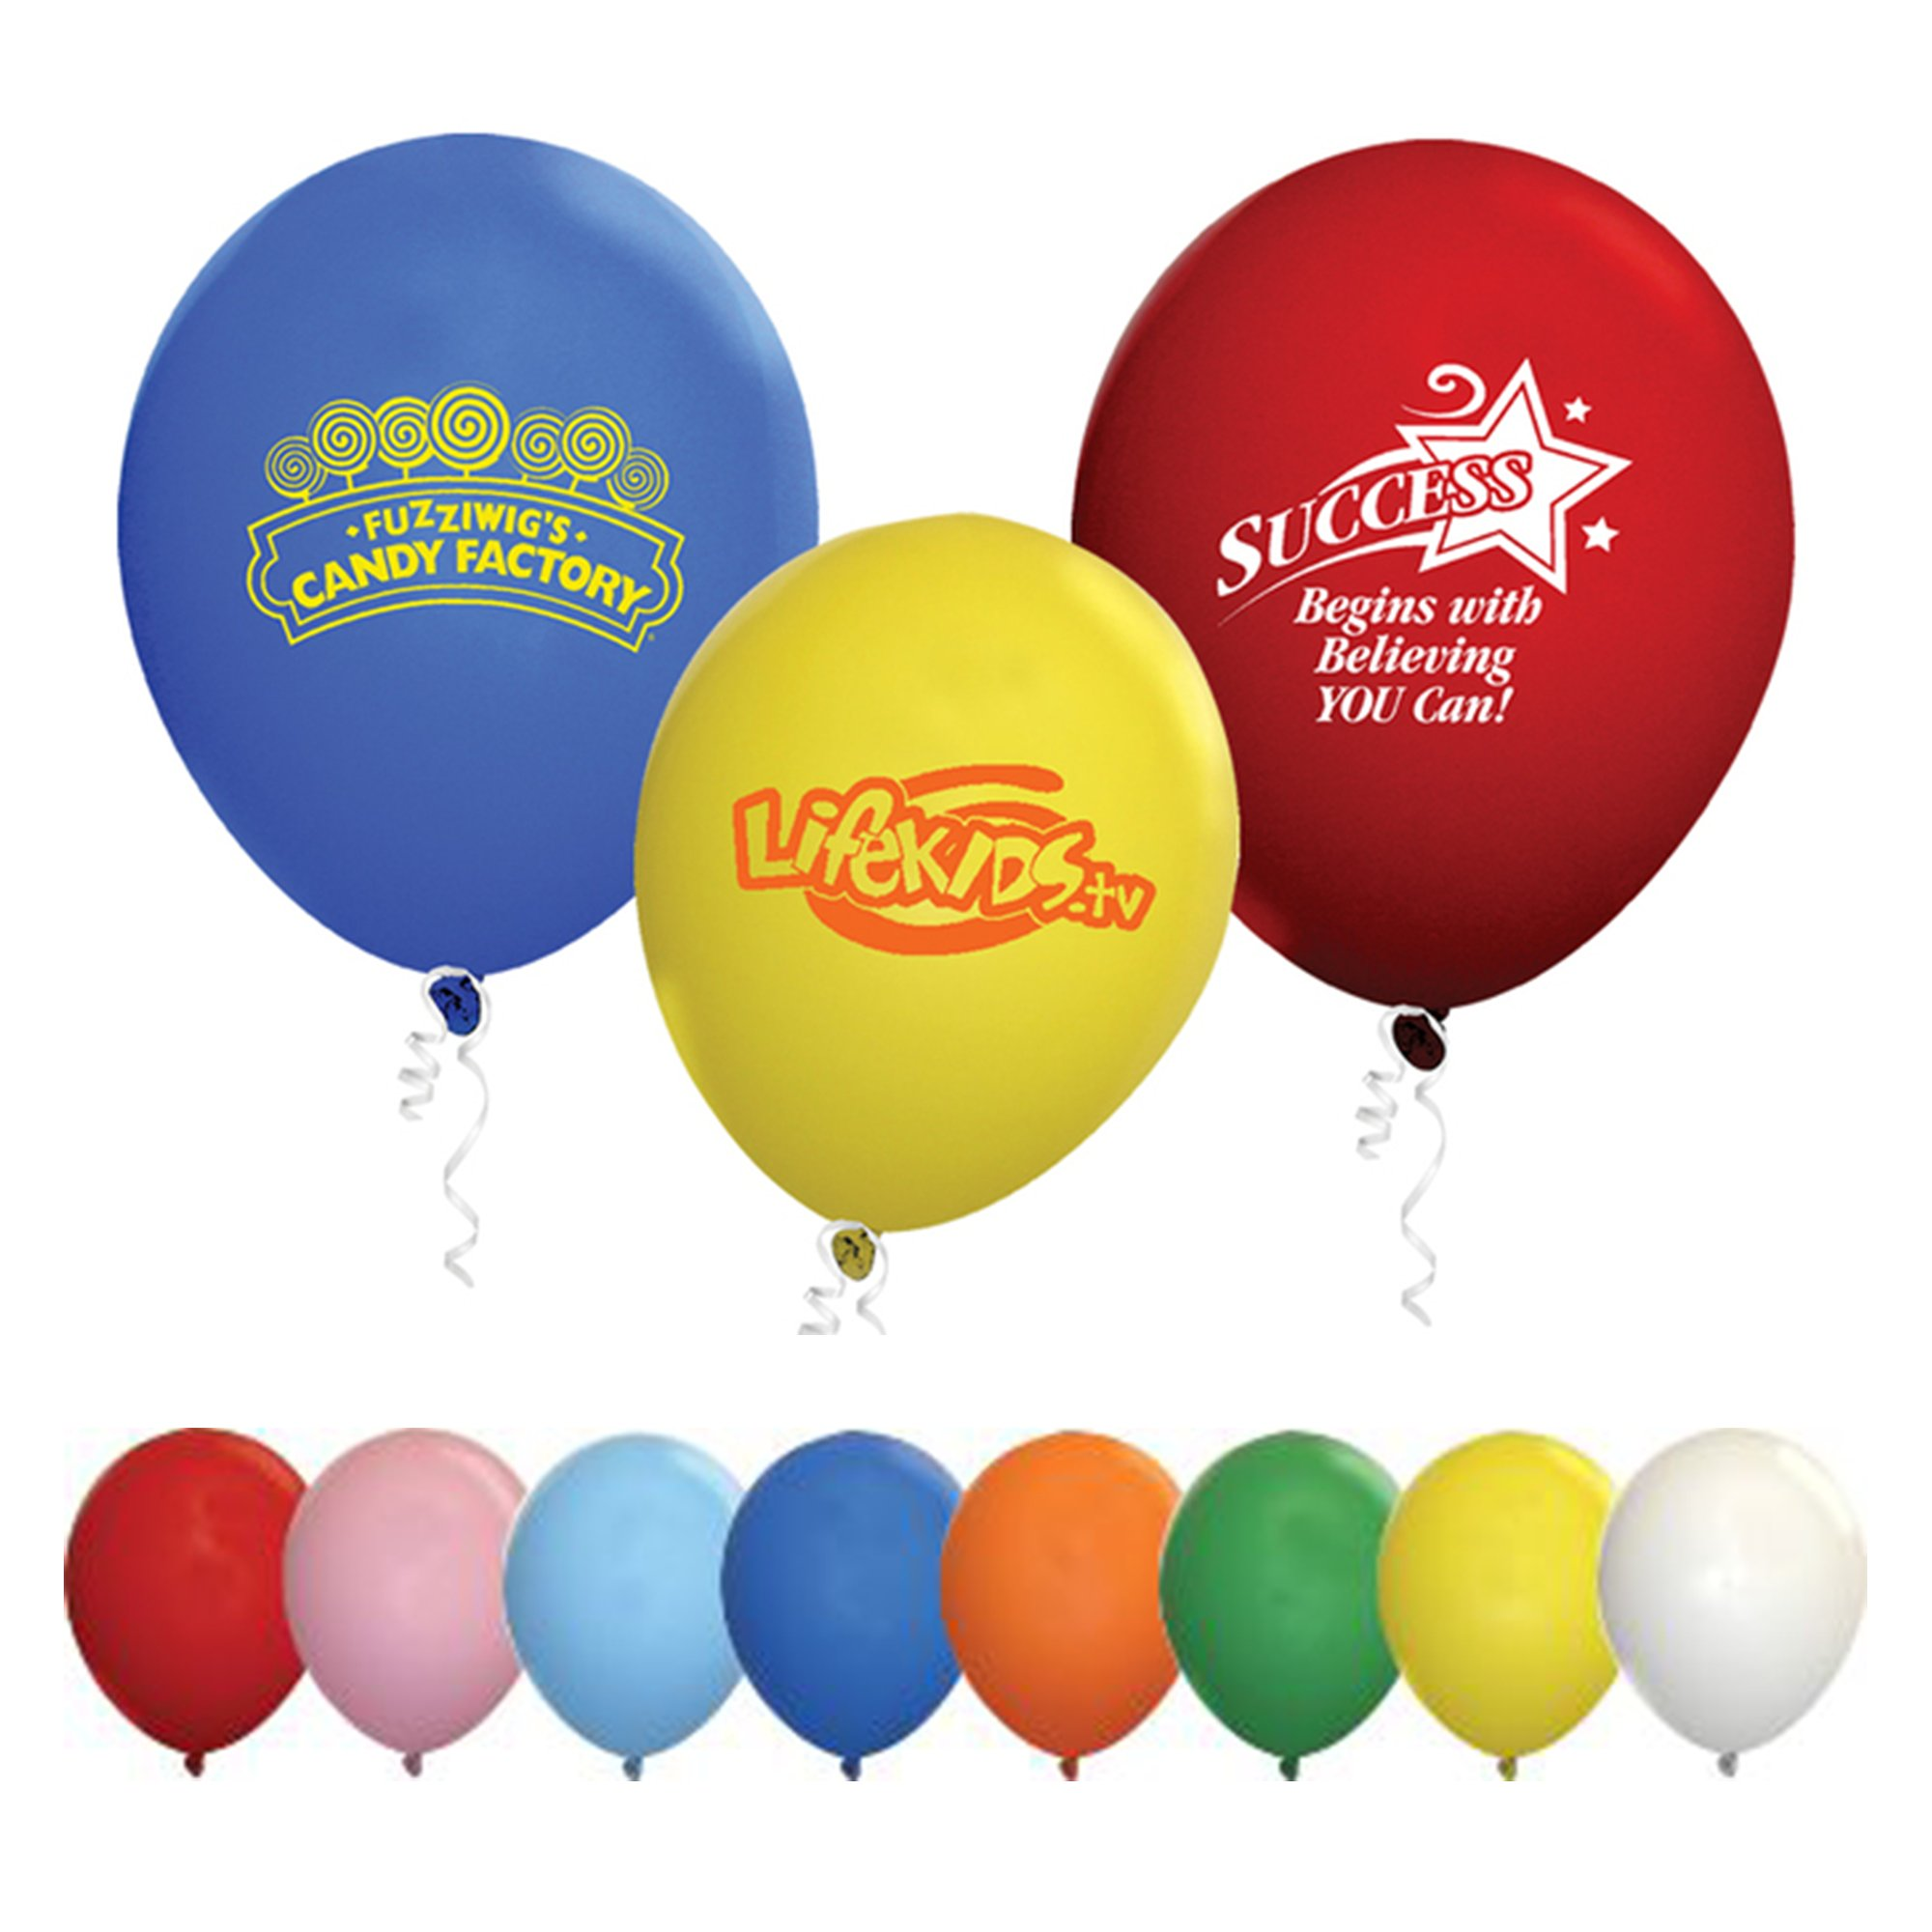 Draw attention to your business with colourful imprinted balloons. A must have for celebrations, grand openings and special events.